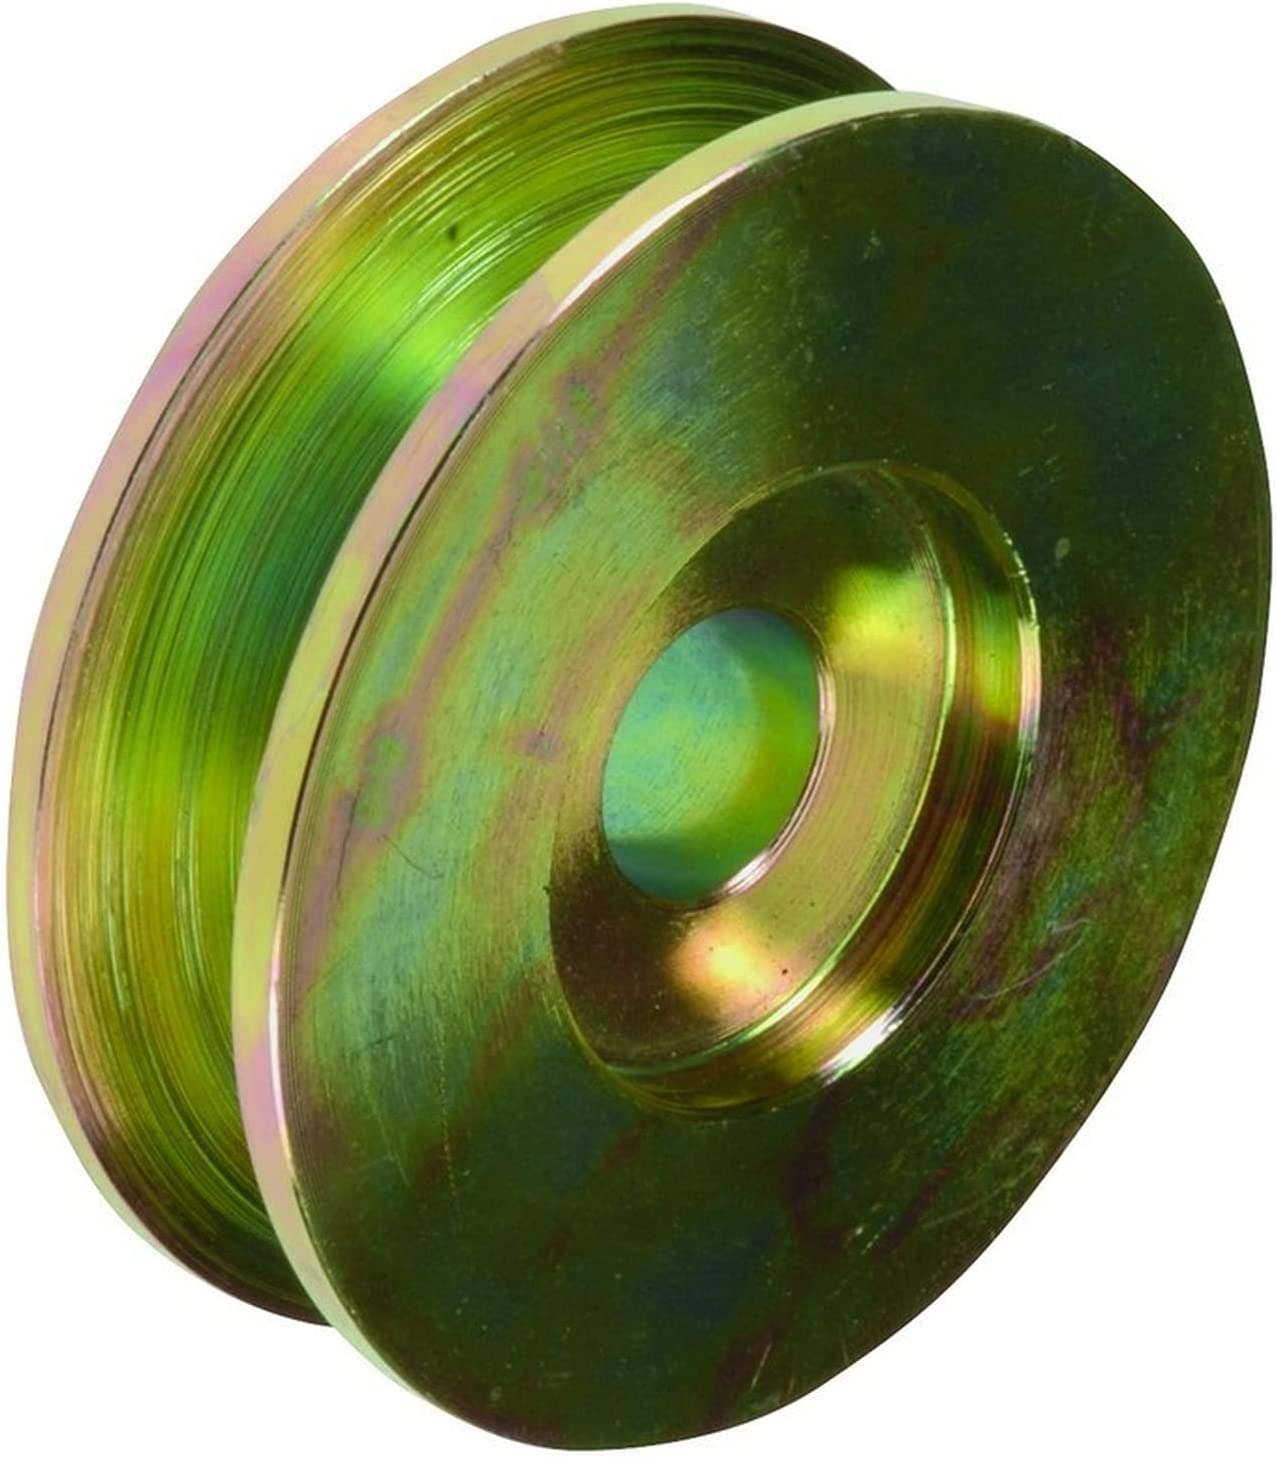 New 2021 spring and summer new Pulley Replacement for depot International Cargostar V8 80-80 6.6L